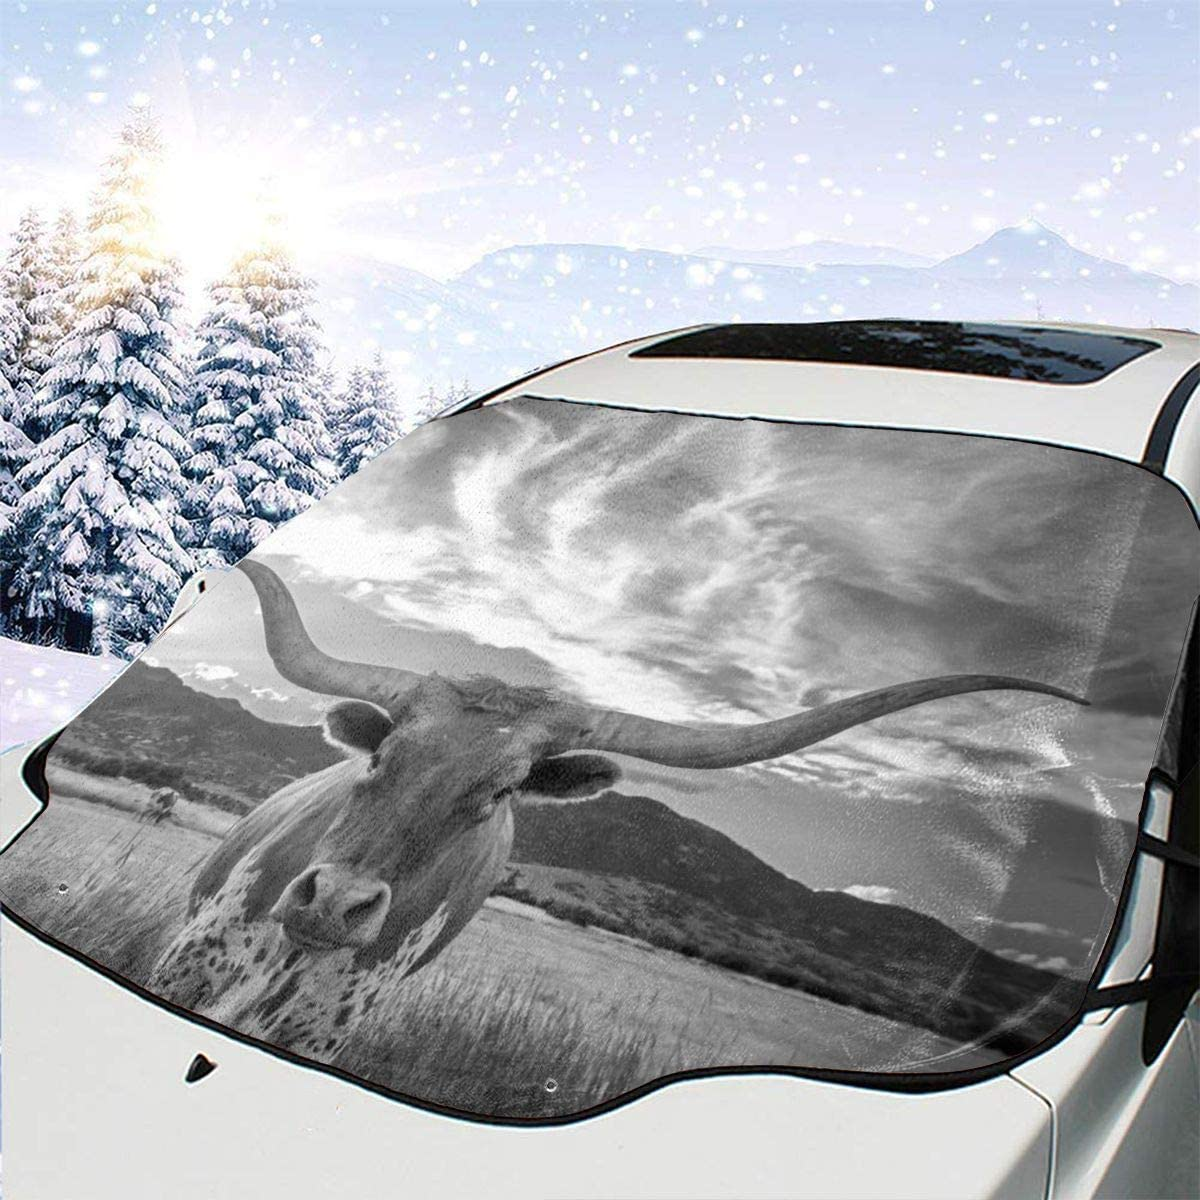 CheChenDengH Animal Texas Longhorn Car Windshield Snow Cover Shade with Magnetic Edges Blocks UV Rays Reflector for Extra Large Windshield Cover Fits All Season and Most Cars